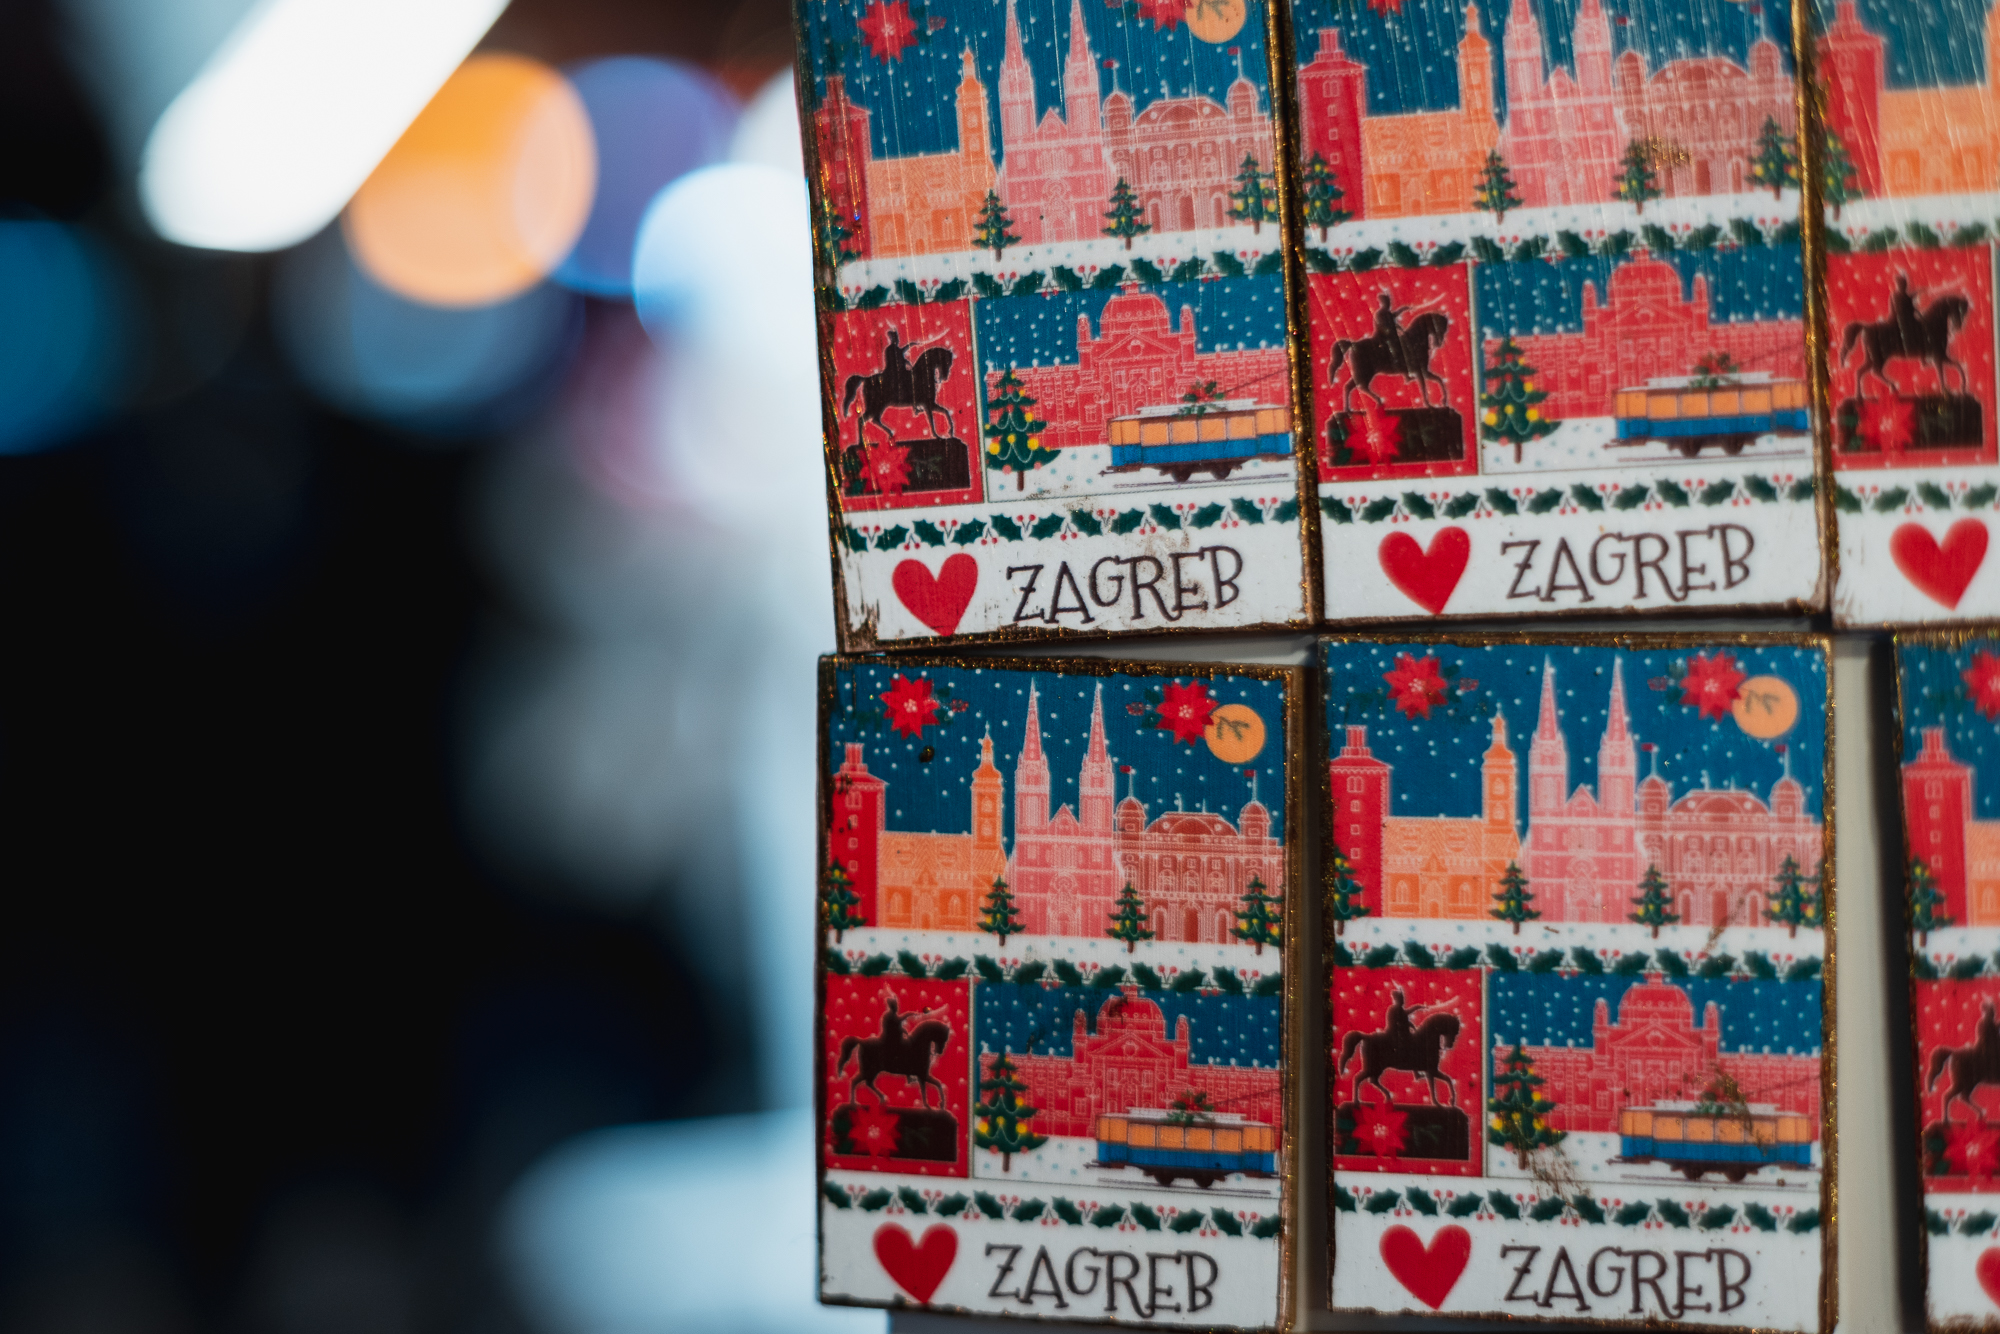 Souvenirs at the Zagreb Christmas market, Croatia